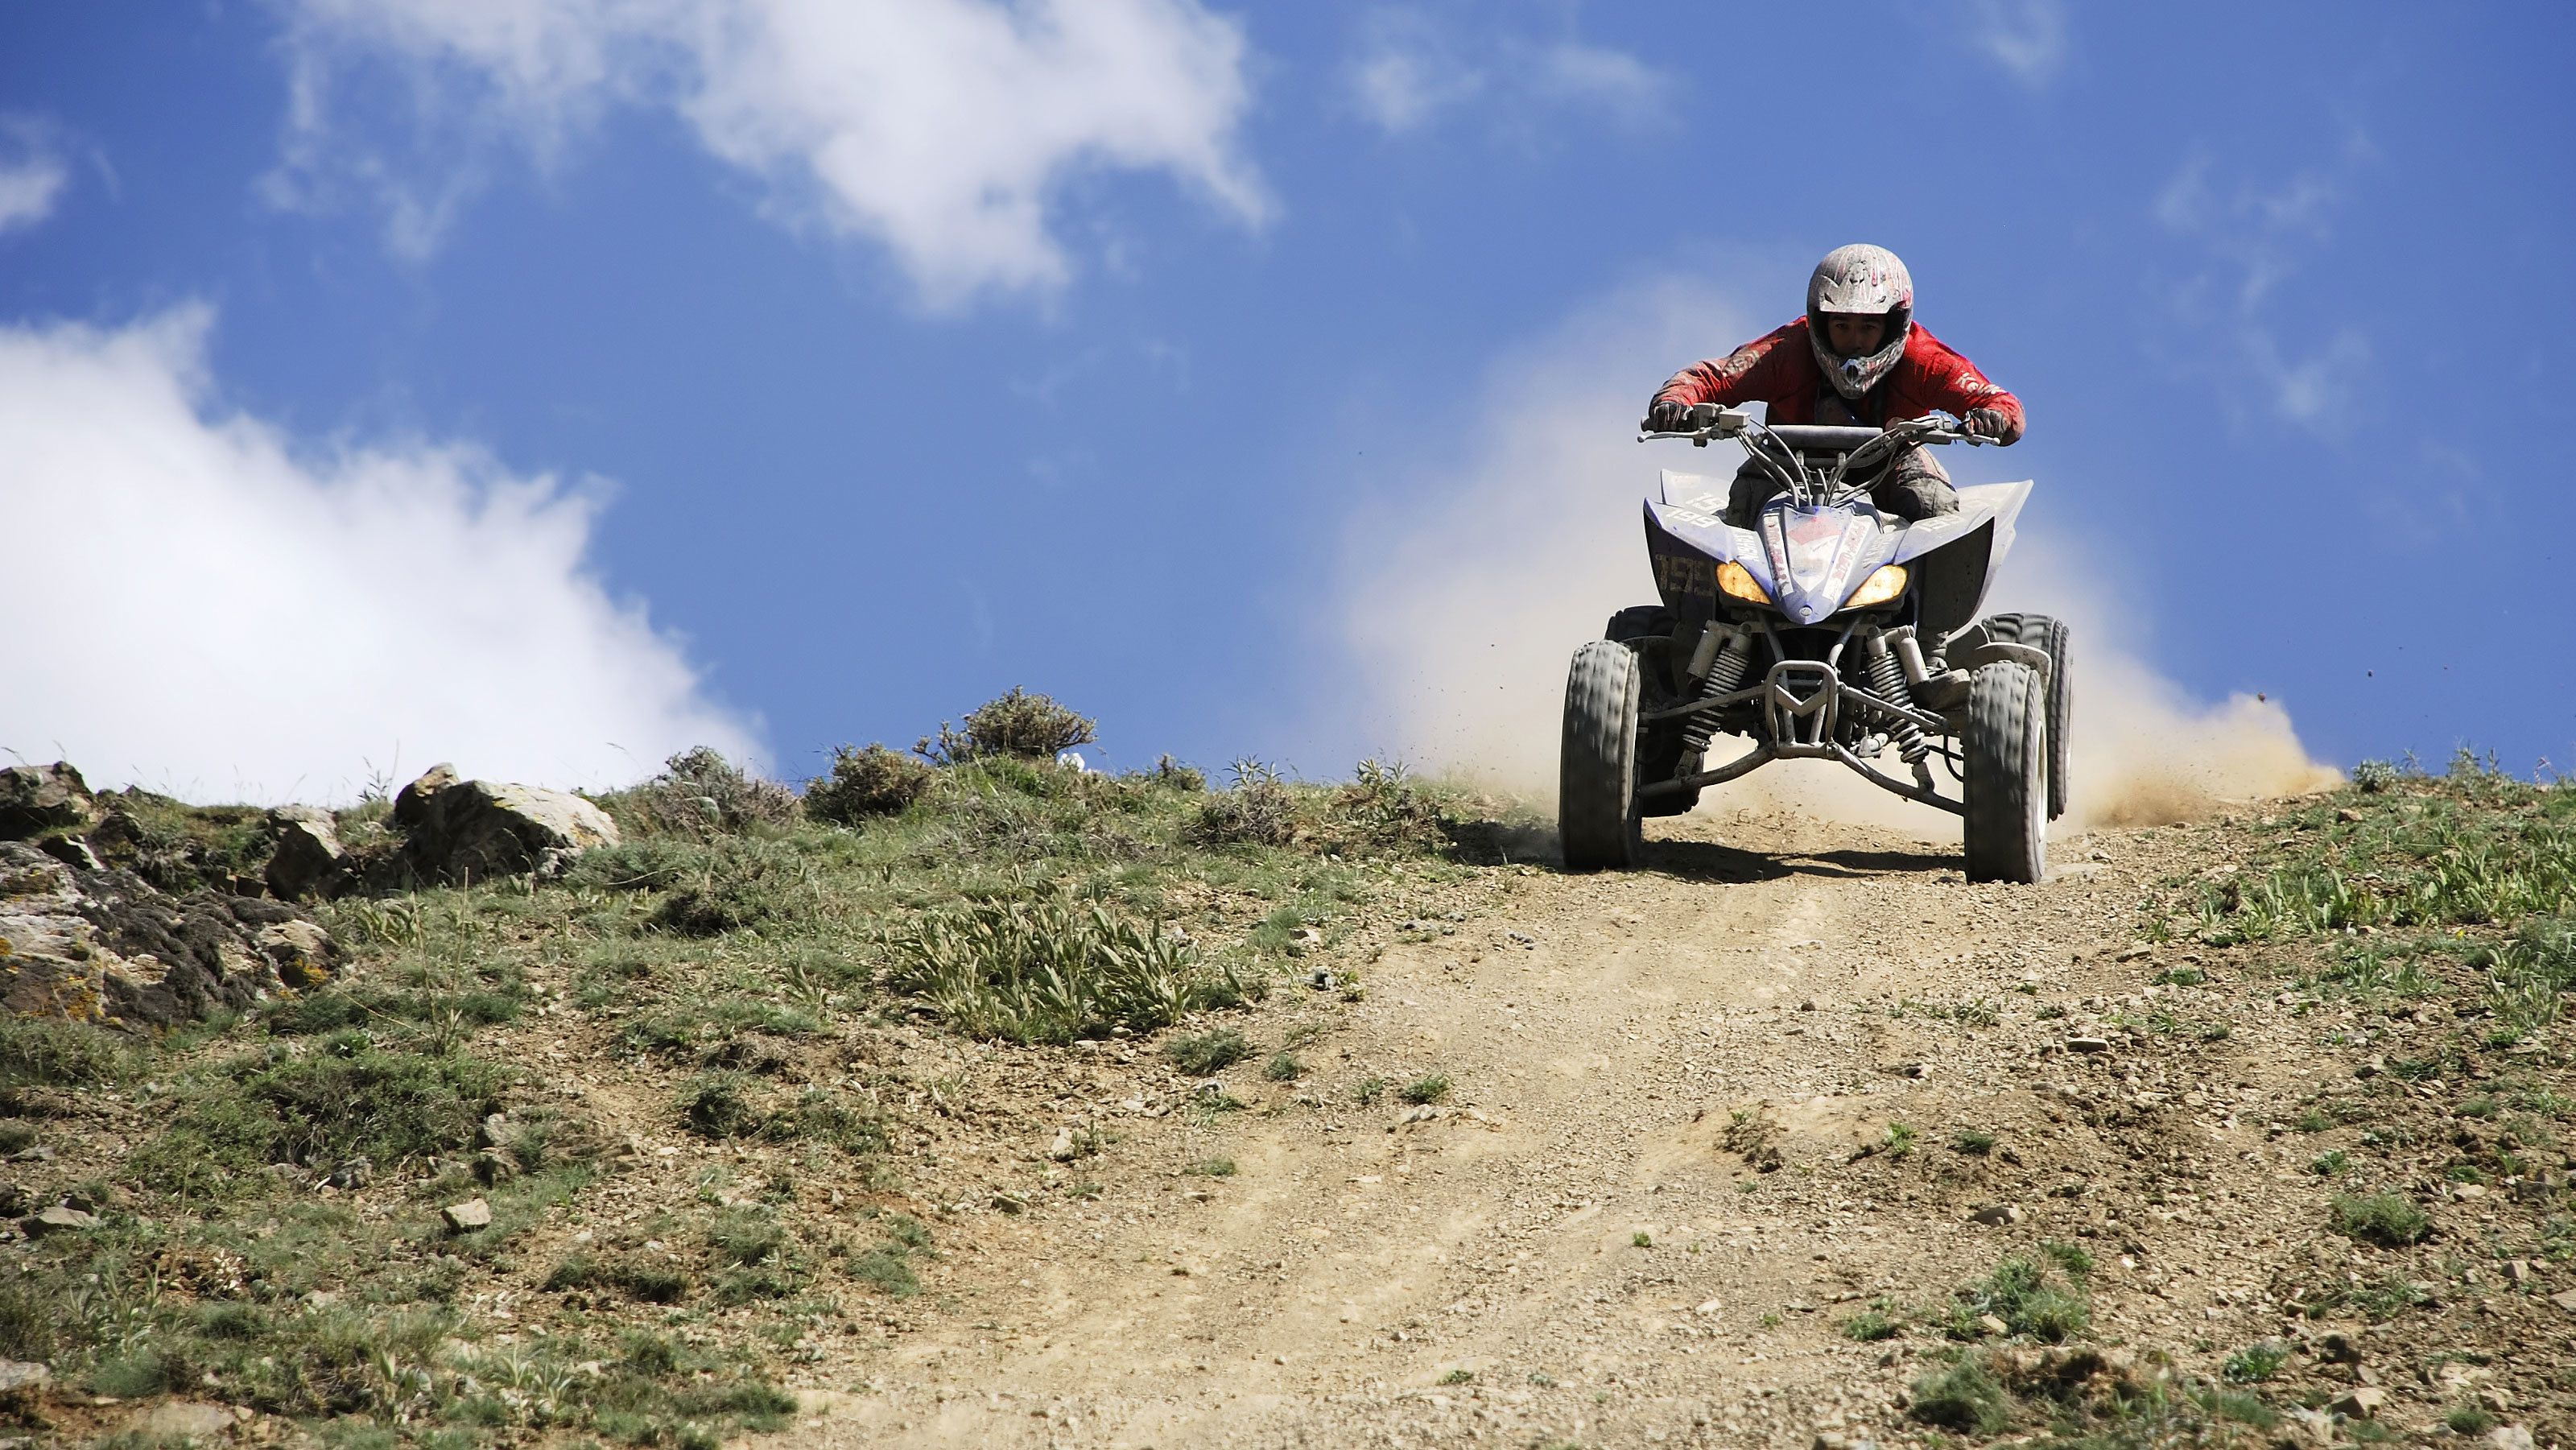 ATV rider on dirt trail